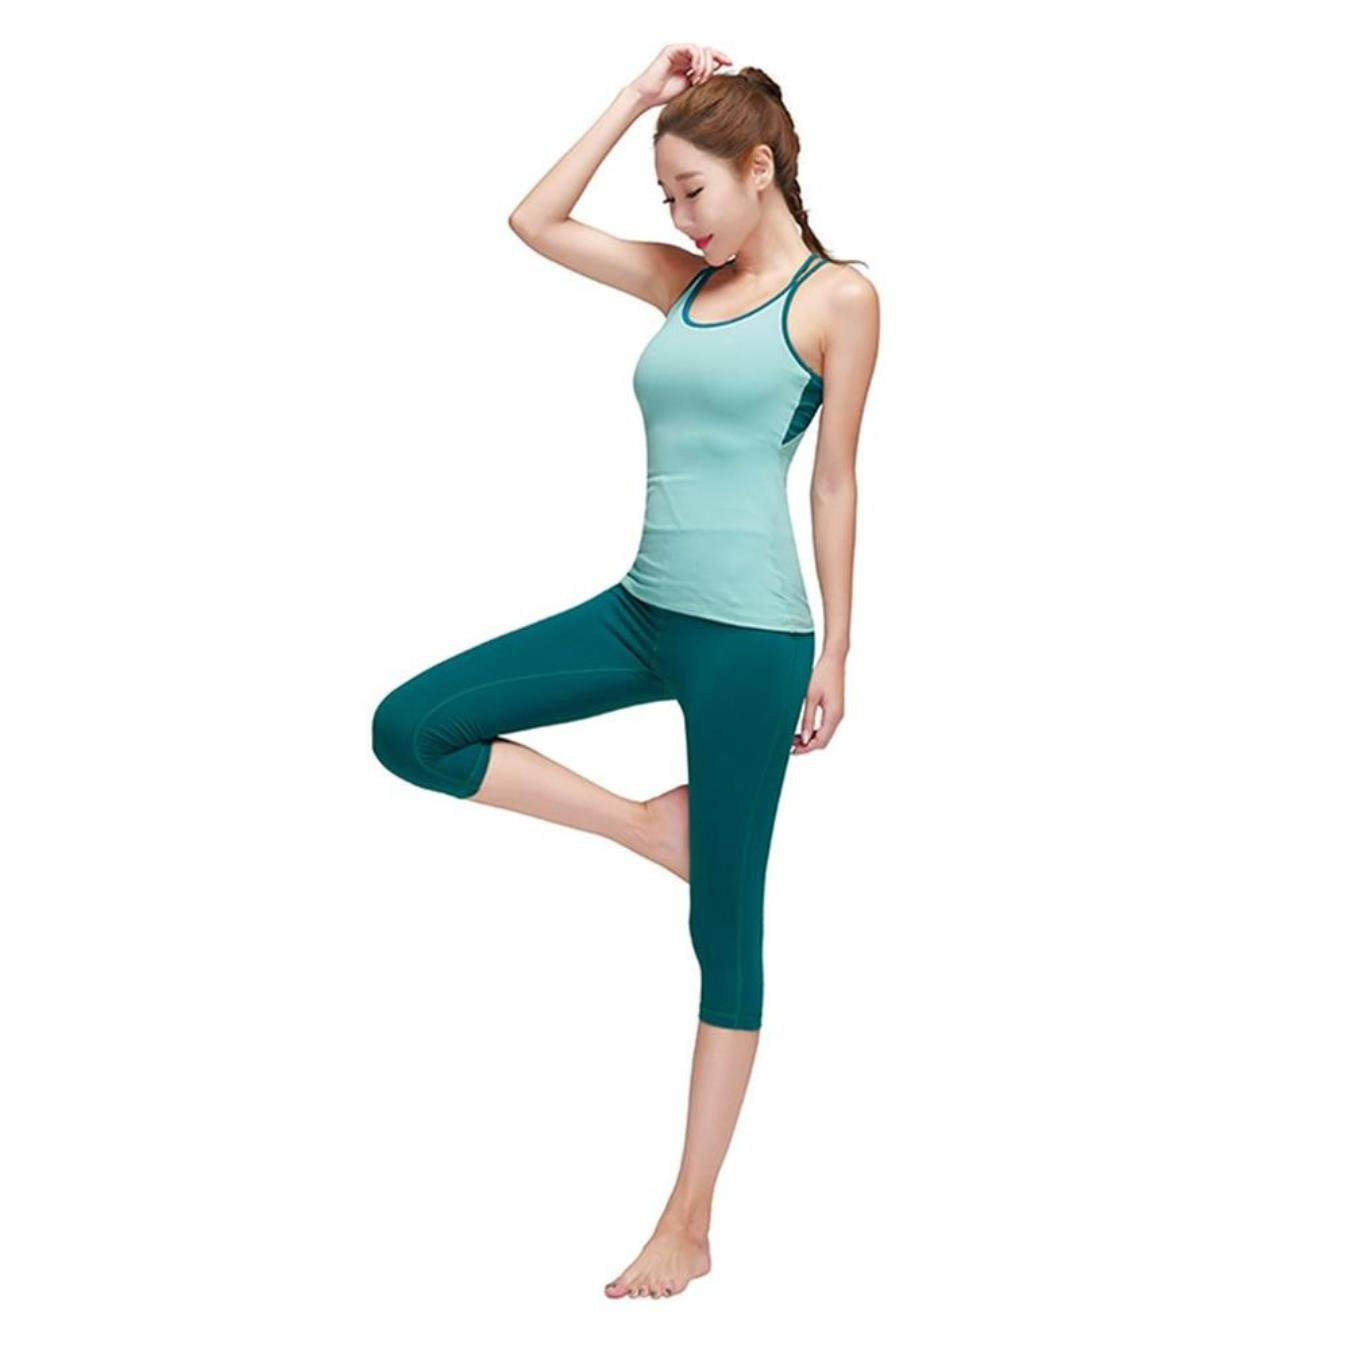 TUONFC Women Fitness Sportswear Running Exercise Yoga Sets Breathable Sports Suit Vest Outdoor